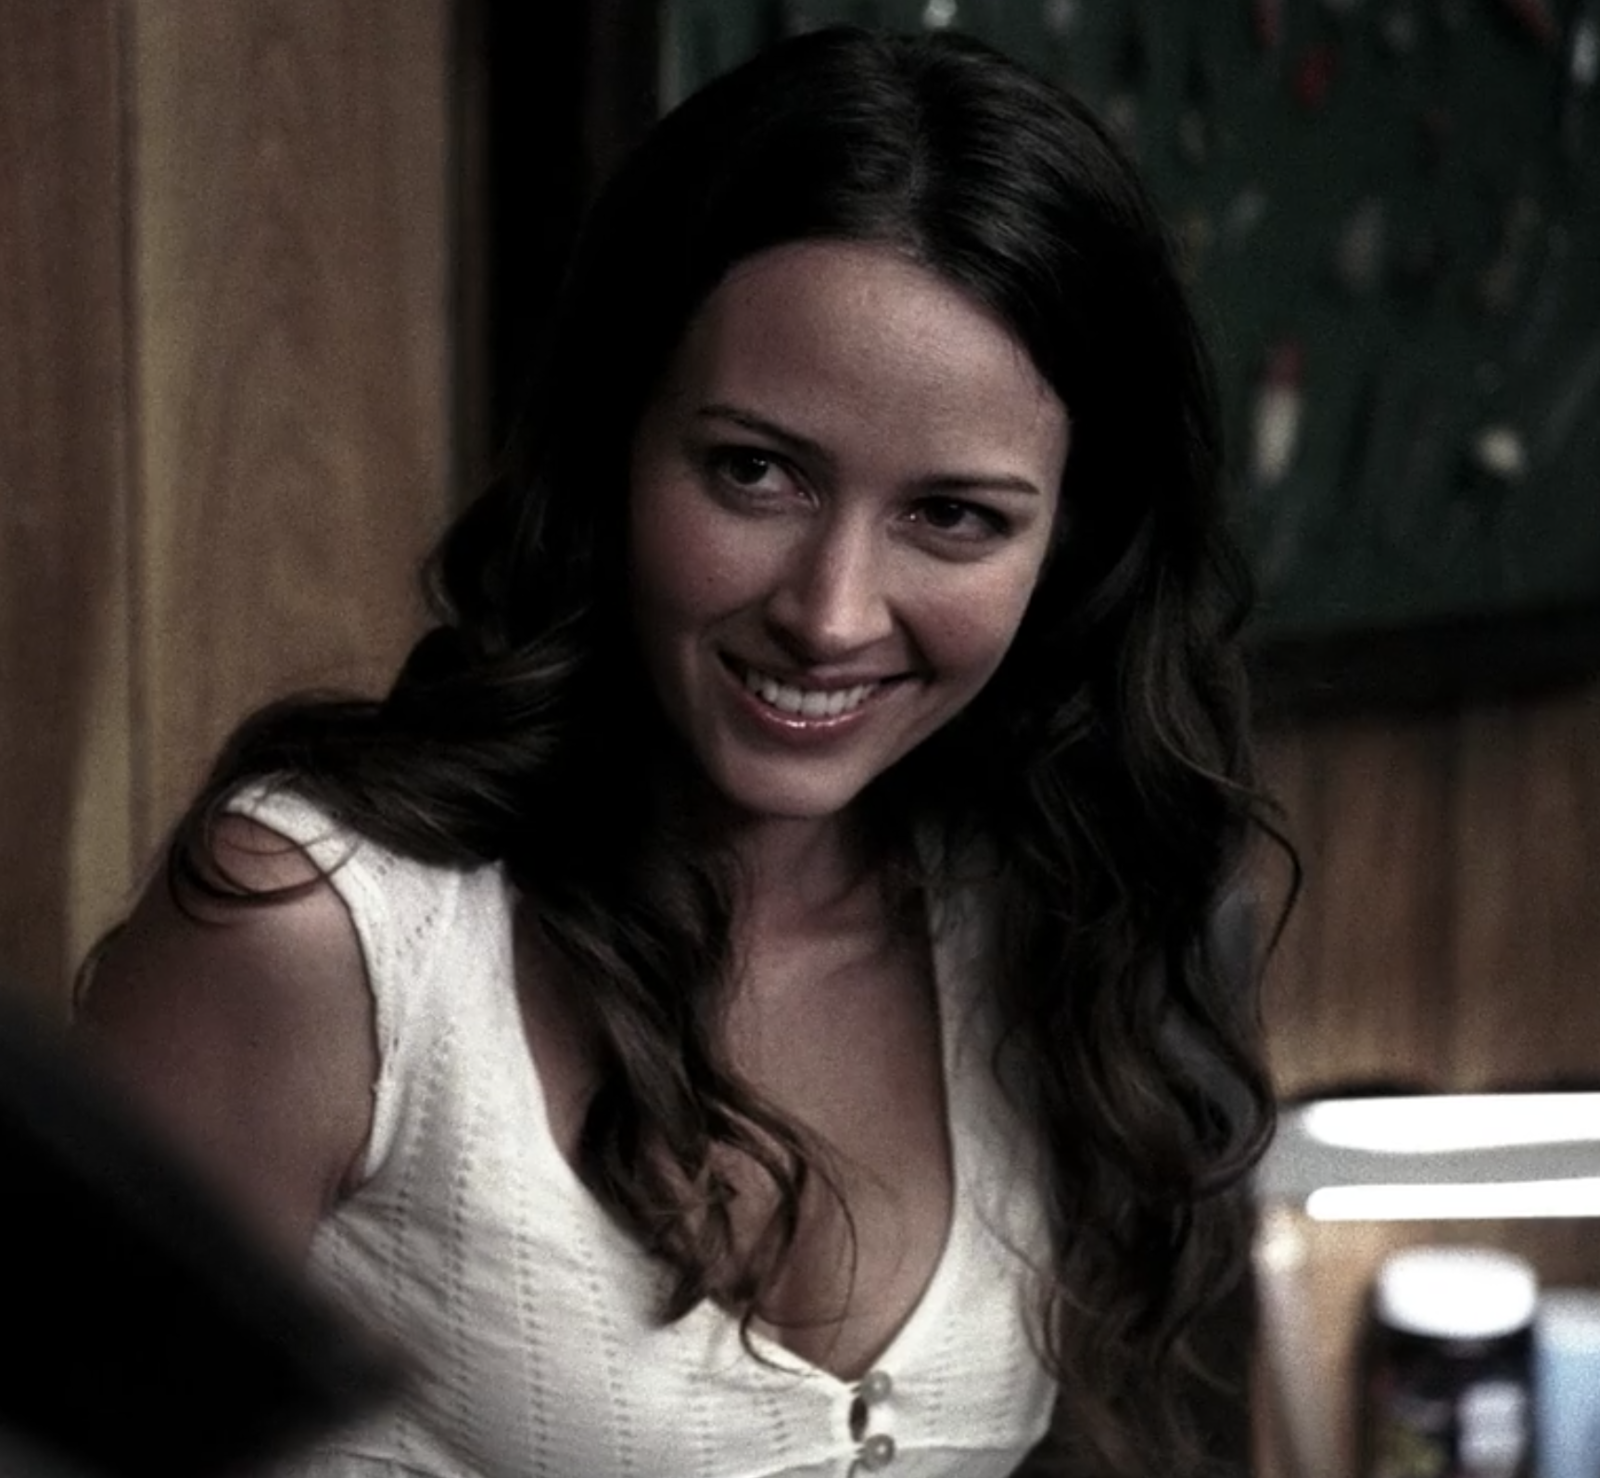 Angel  and  The Gifted  star Amy Acker guest-starred in Season 1 as Andrea, a widow who was being haunted by a spirit.